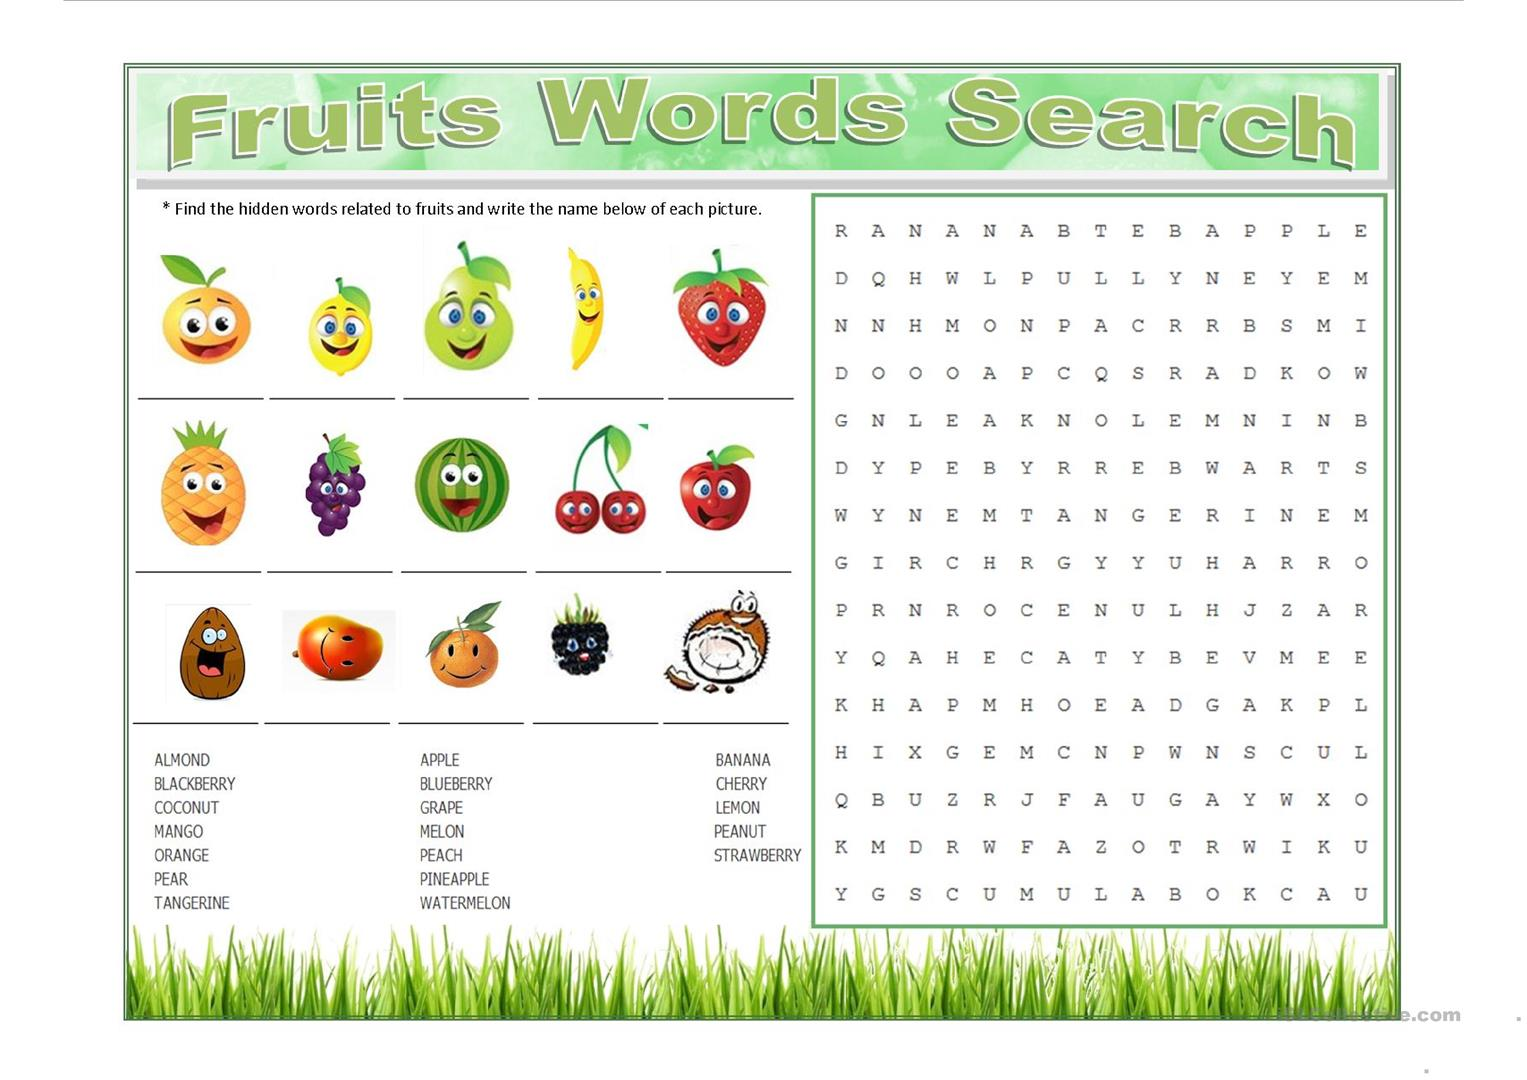 Fruits Words Search